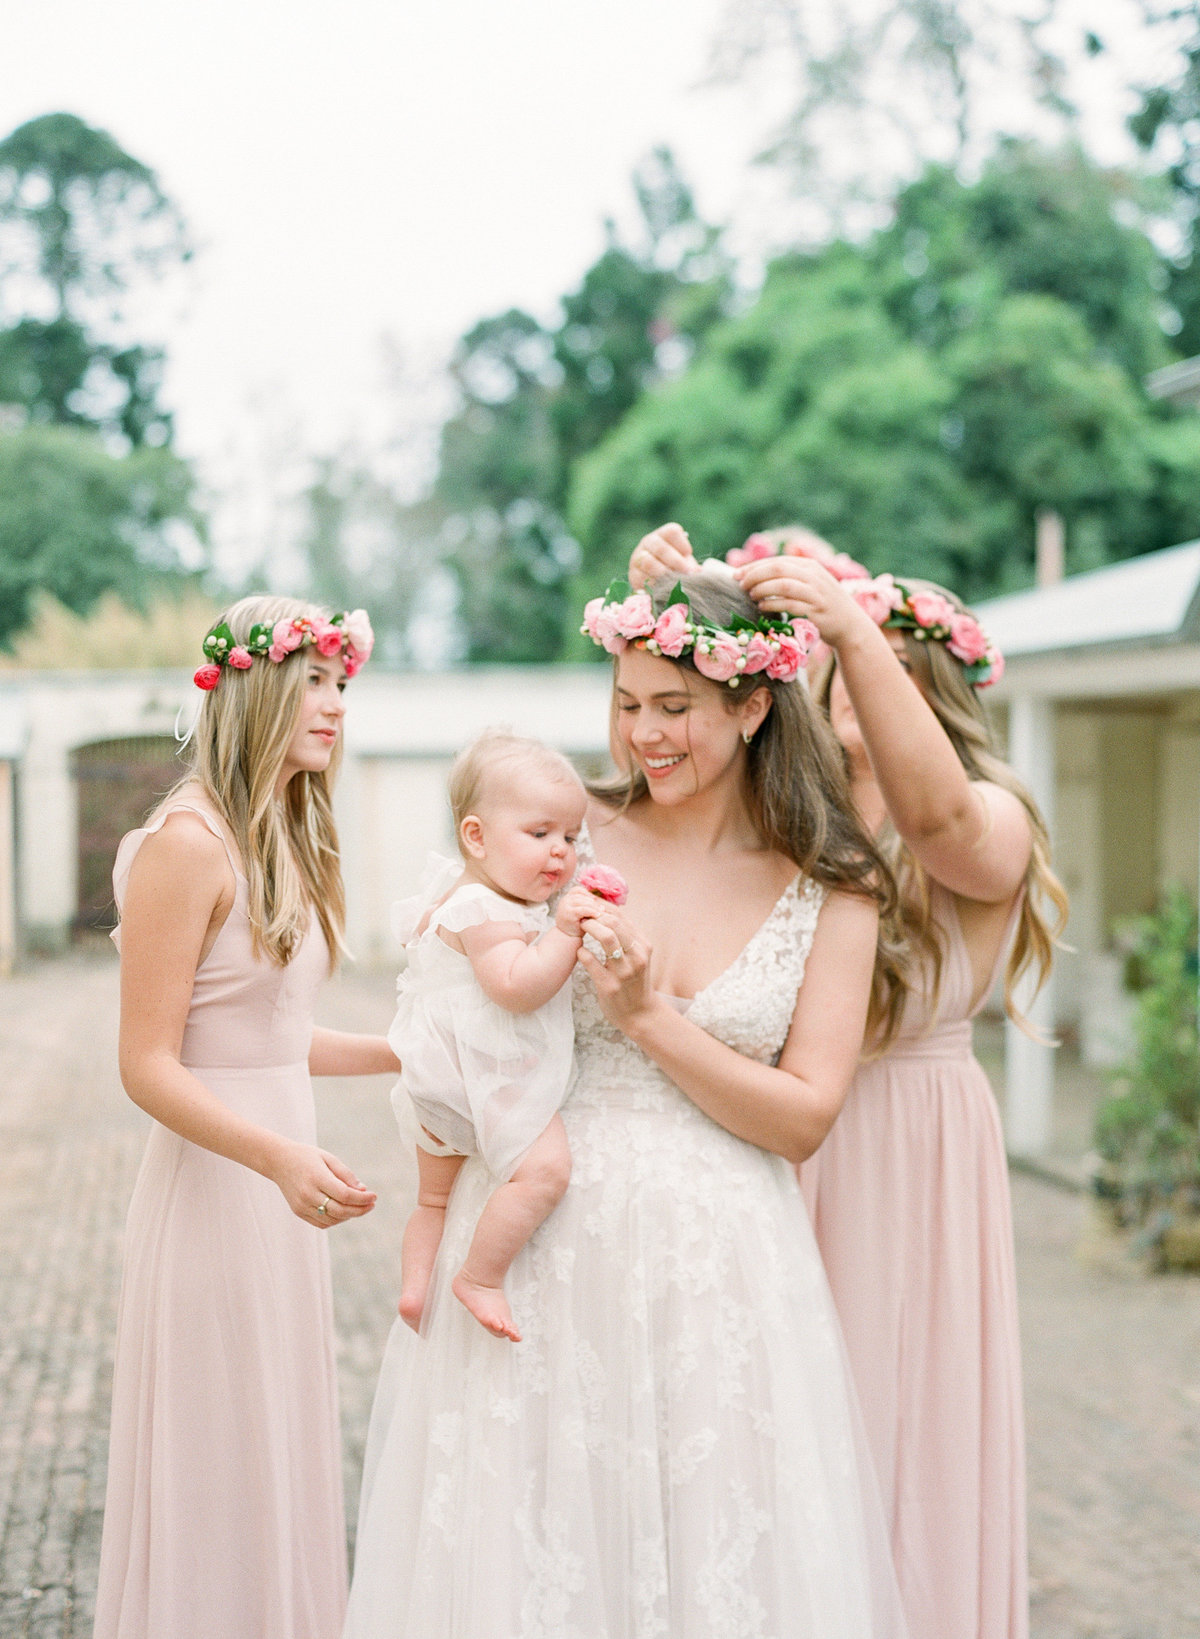 dreamy fine art wedding australia camden will capen 0023